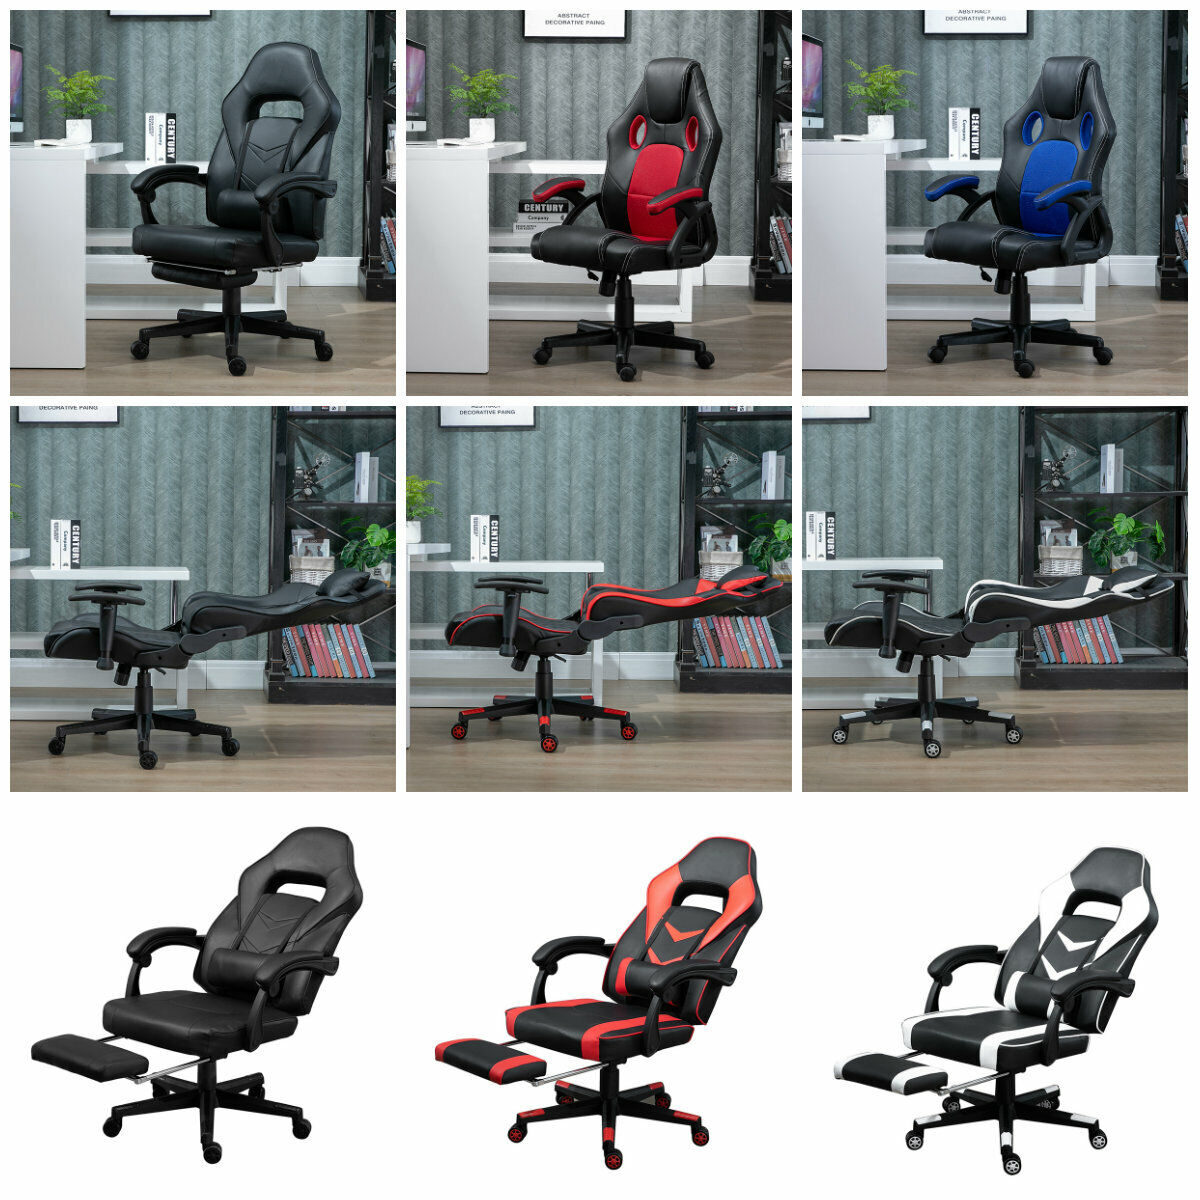 Headrest Lumbar Pillows Set Replacement Ak Dk Racer Suede Gaming Chairs Pillow For Sale Ebay